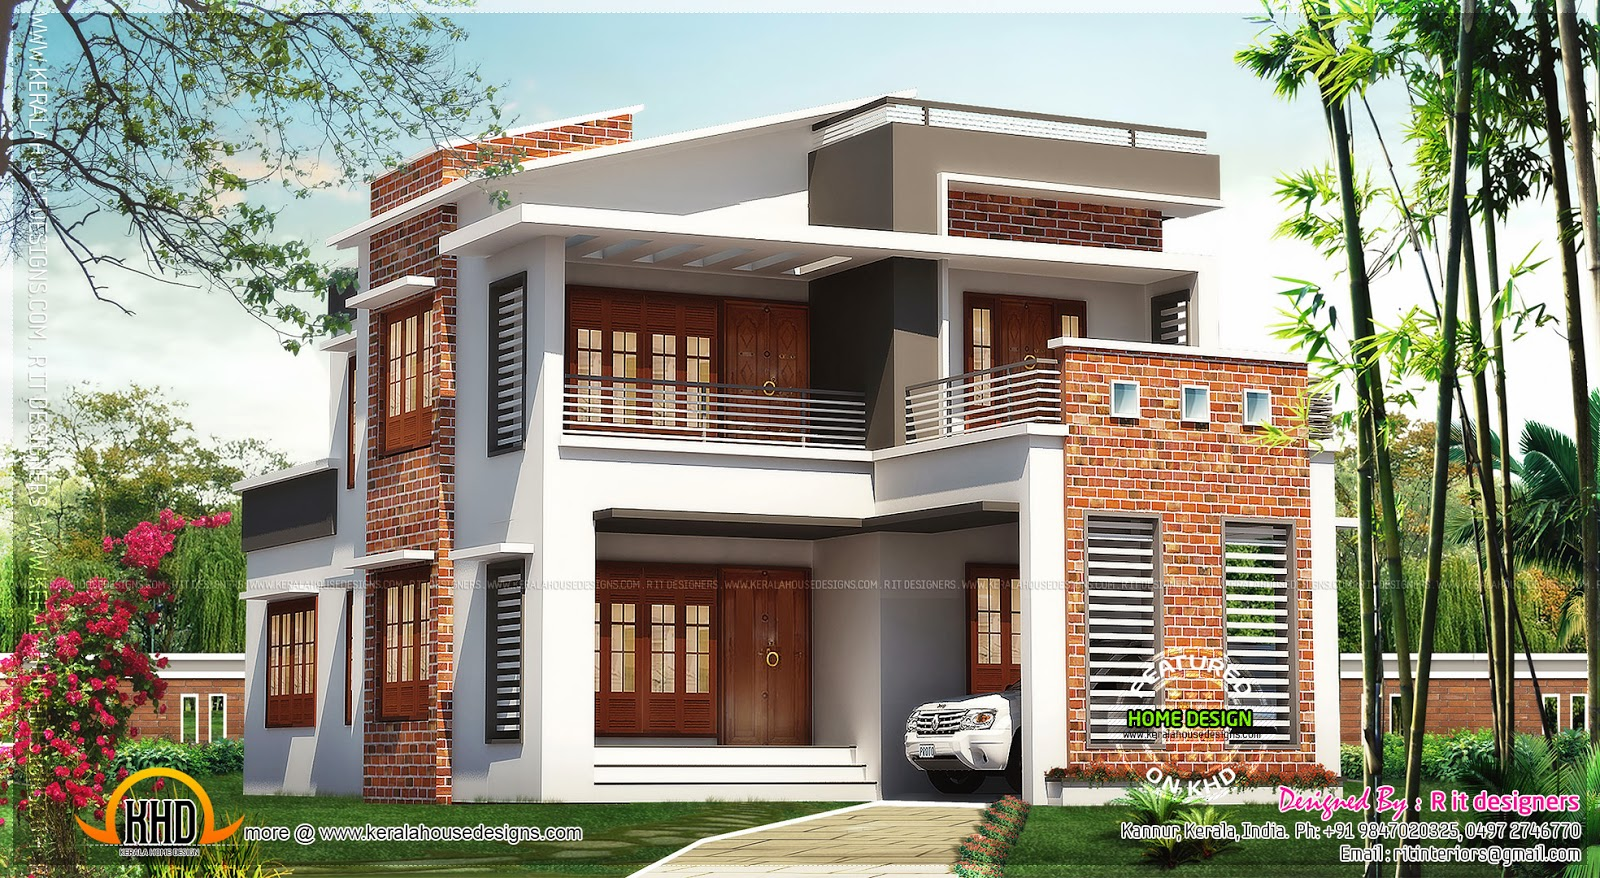 Brick mix house exterior design kerala home design and for House design pictures exterior